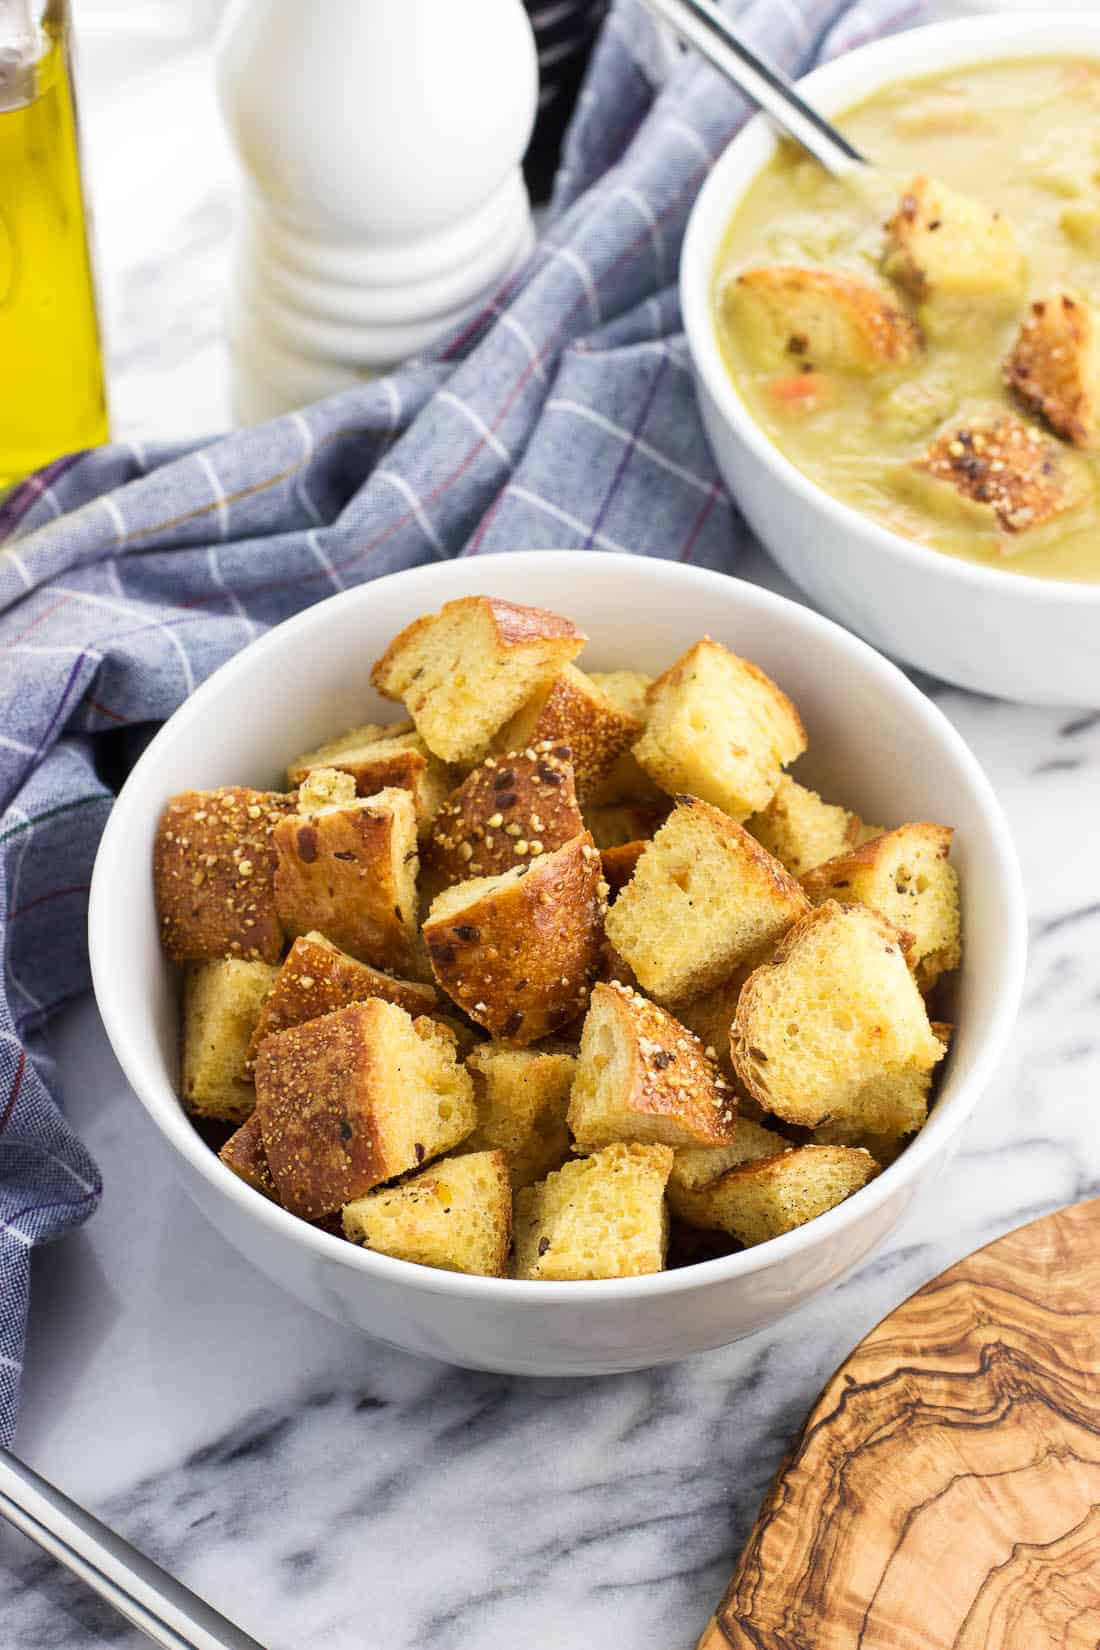 Homemade croutons in a bowl next to a bowl of soup